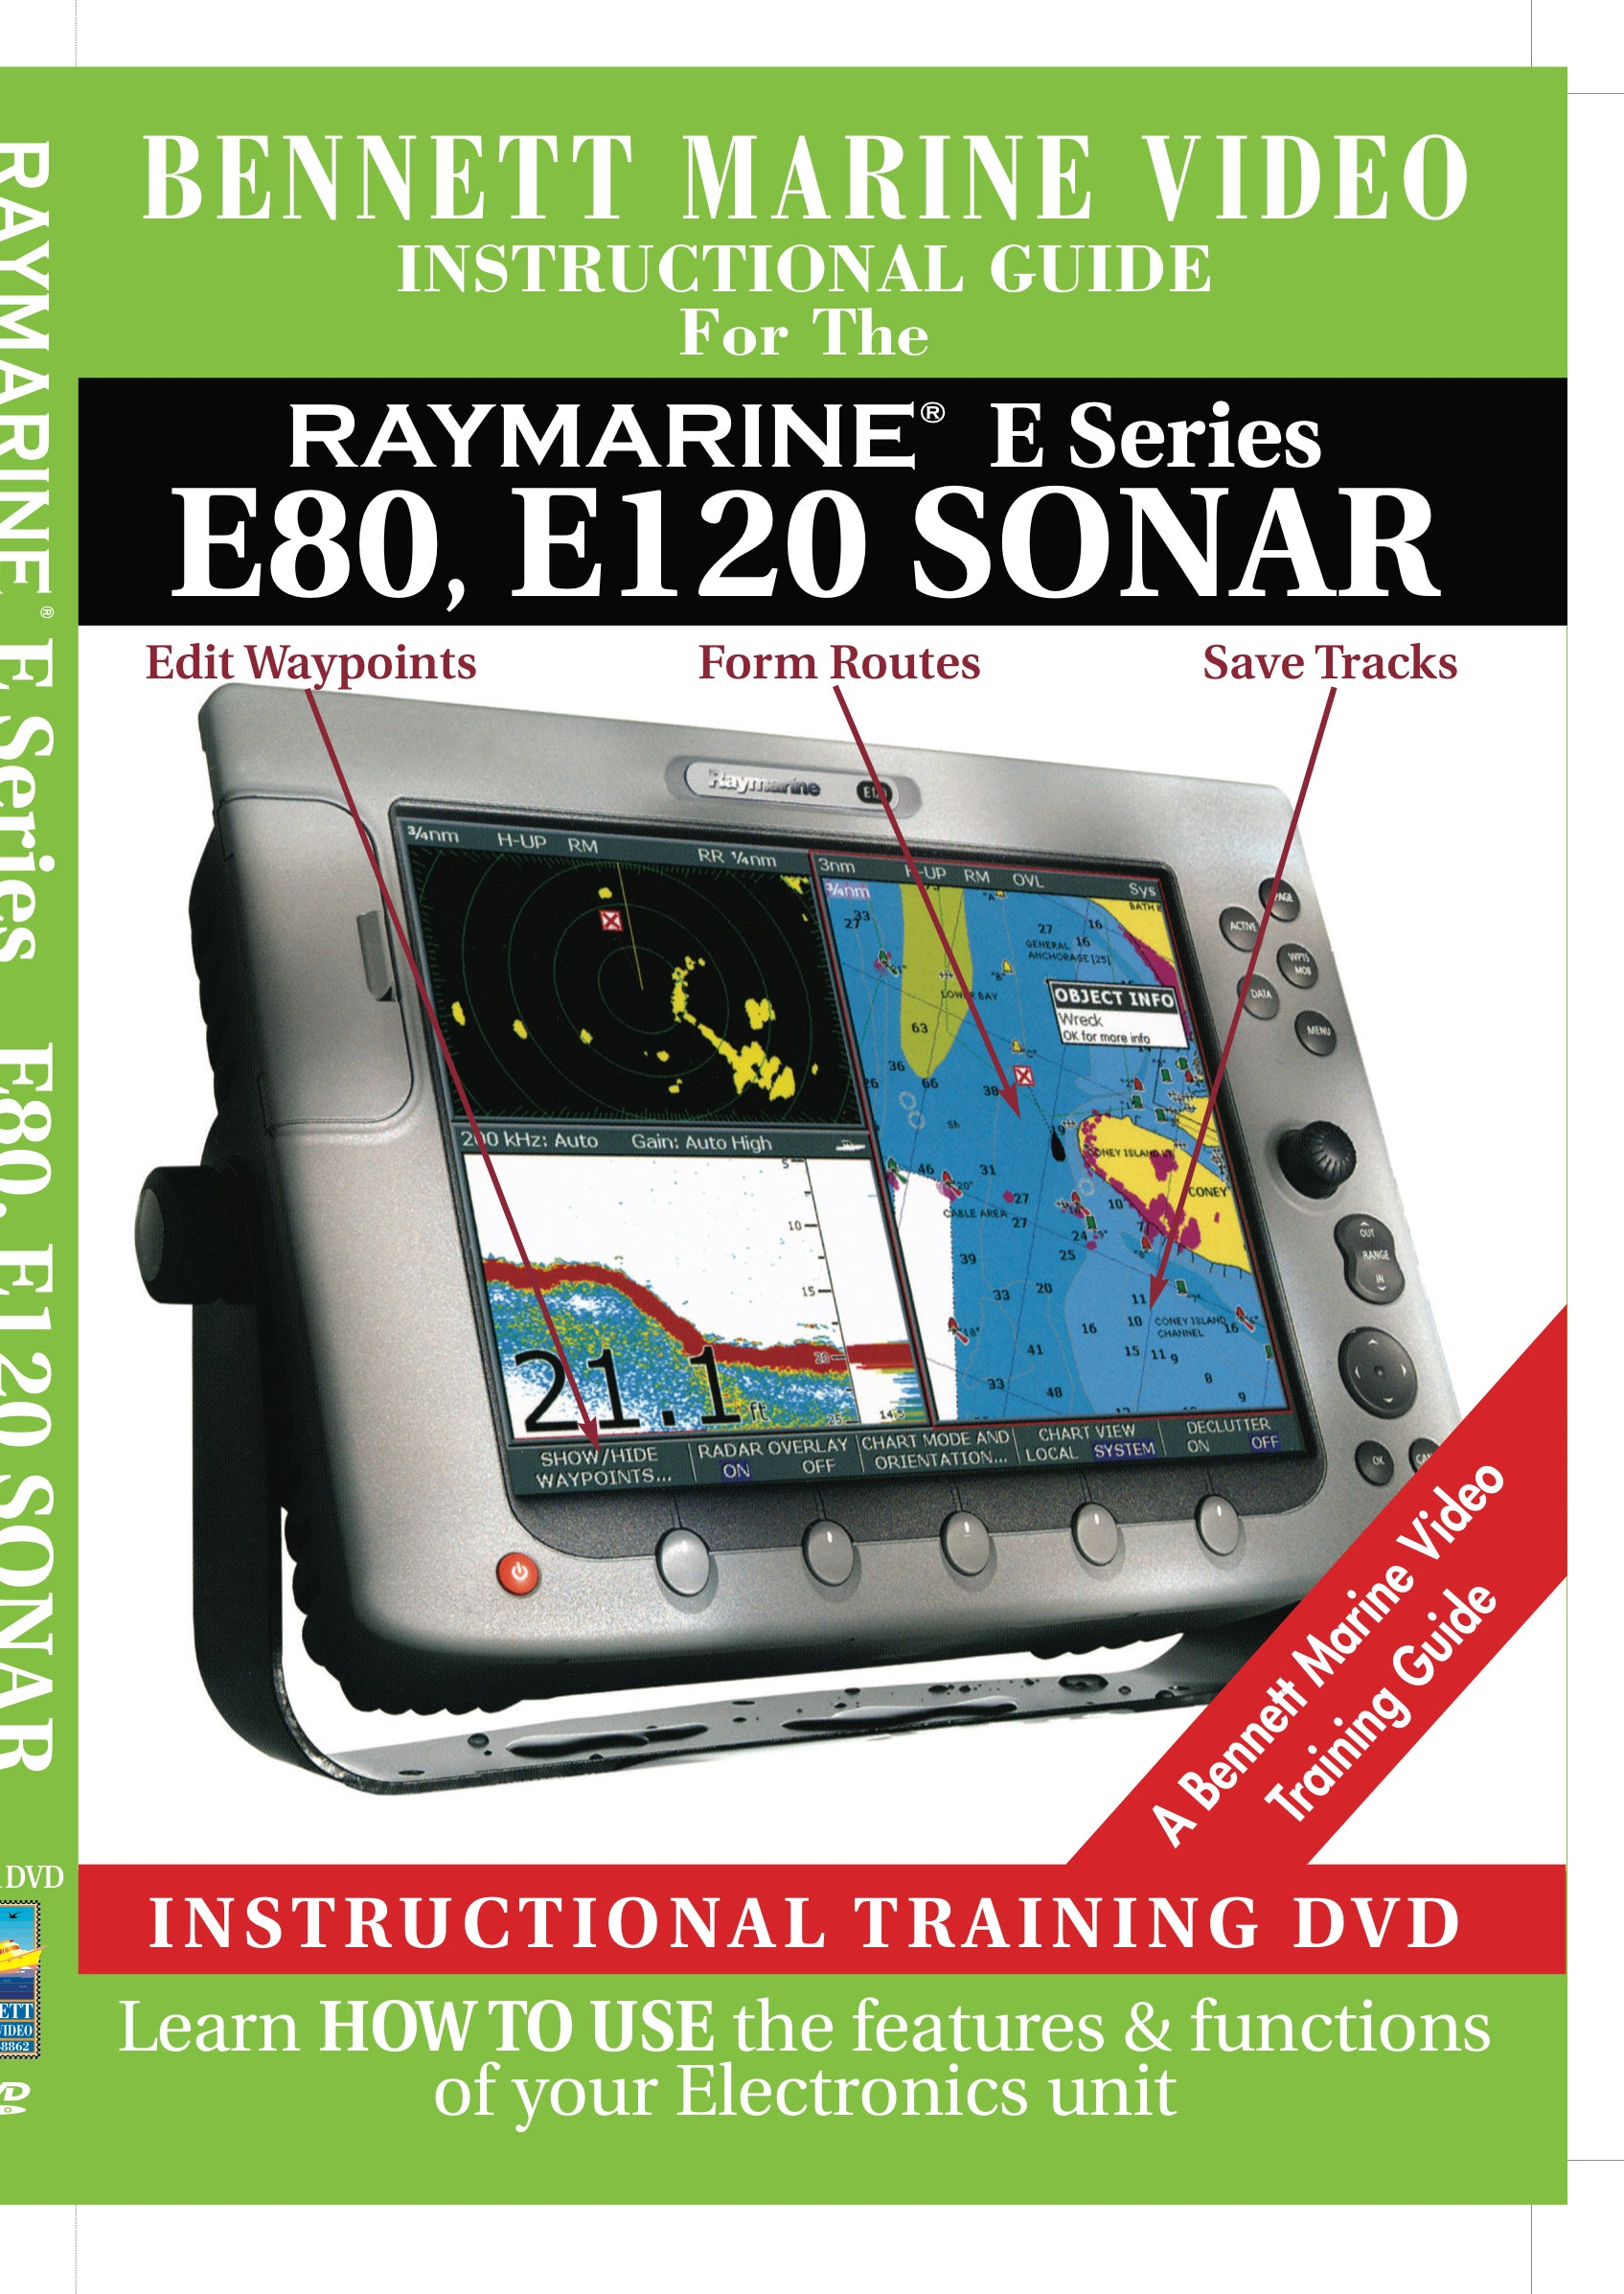 Raymarine E Series: E80, E120 Sonar Operation Only (DVD)